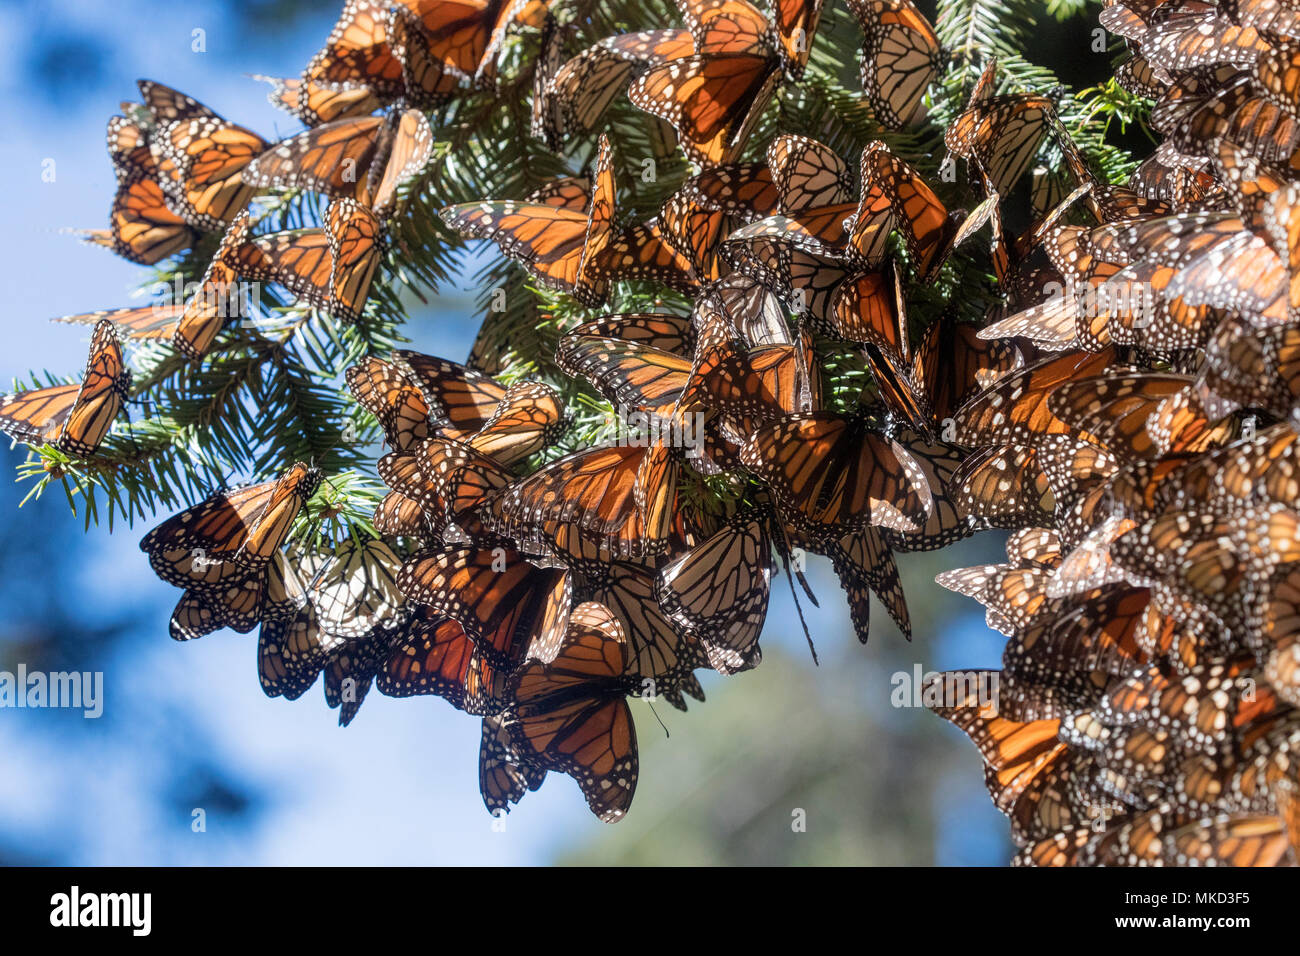 Monarch Butterfly Danaus Plexippus In Wintering From November To